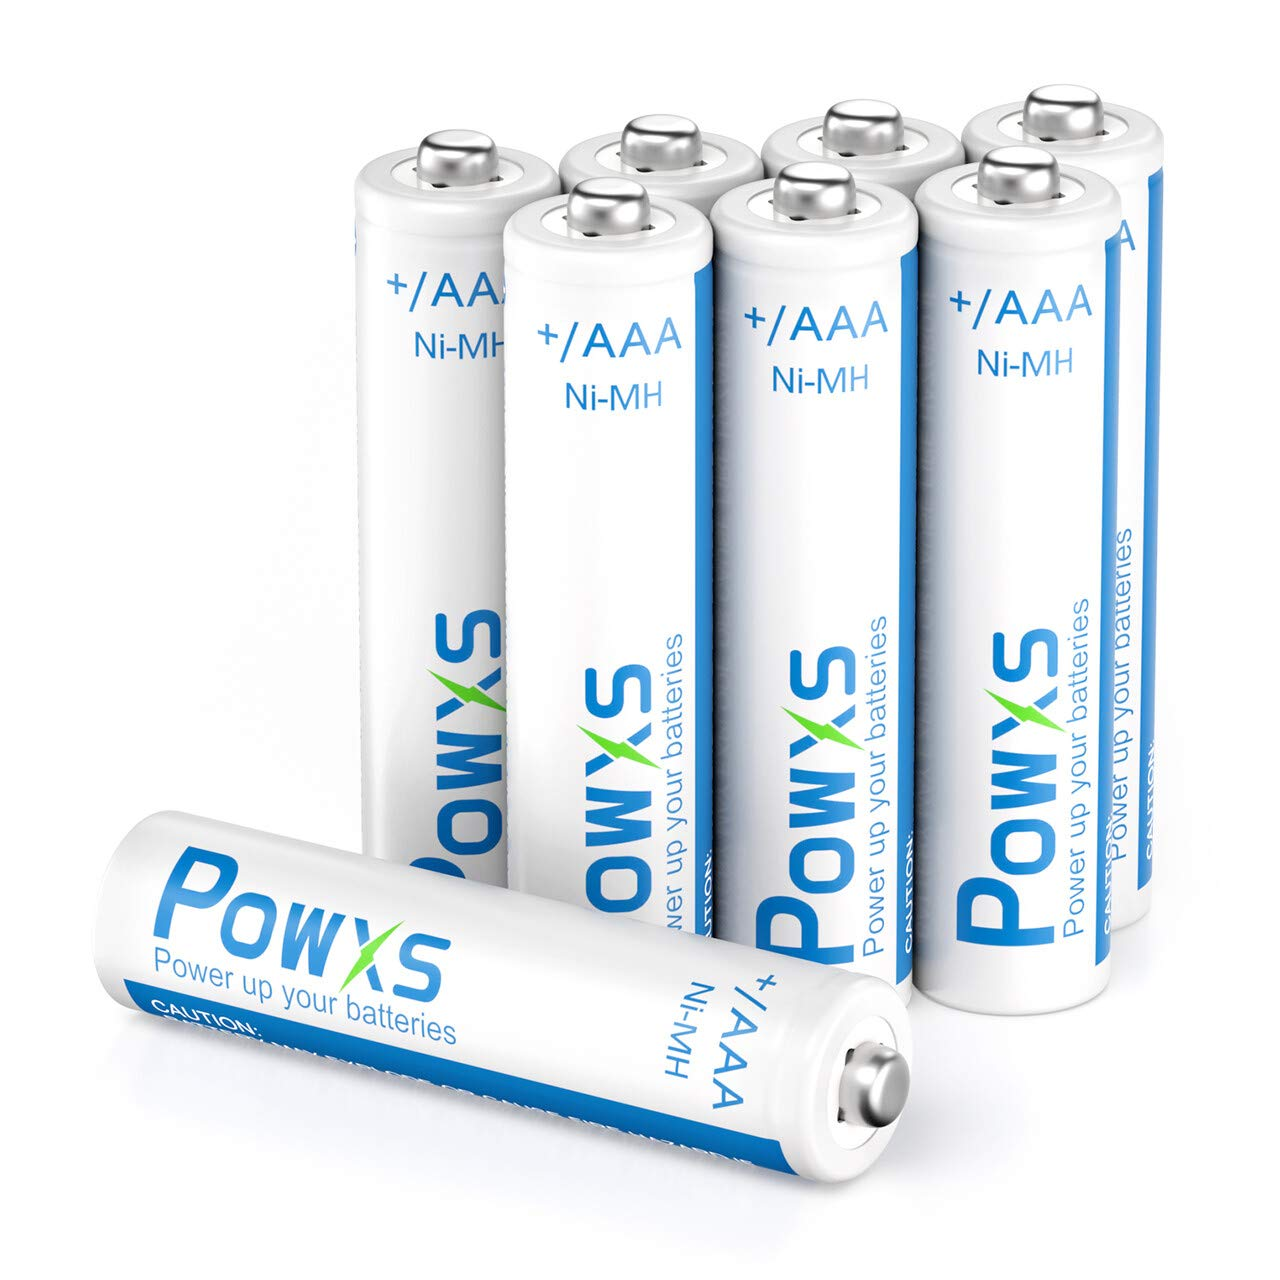 POWXS AAA Rechargeable Batteries (8 Pack), 1.2V 800mAh Pre-Charged Ni-MH Triple A Battery 1200 Cycles Long Lasting & Low Self-Discharge